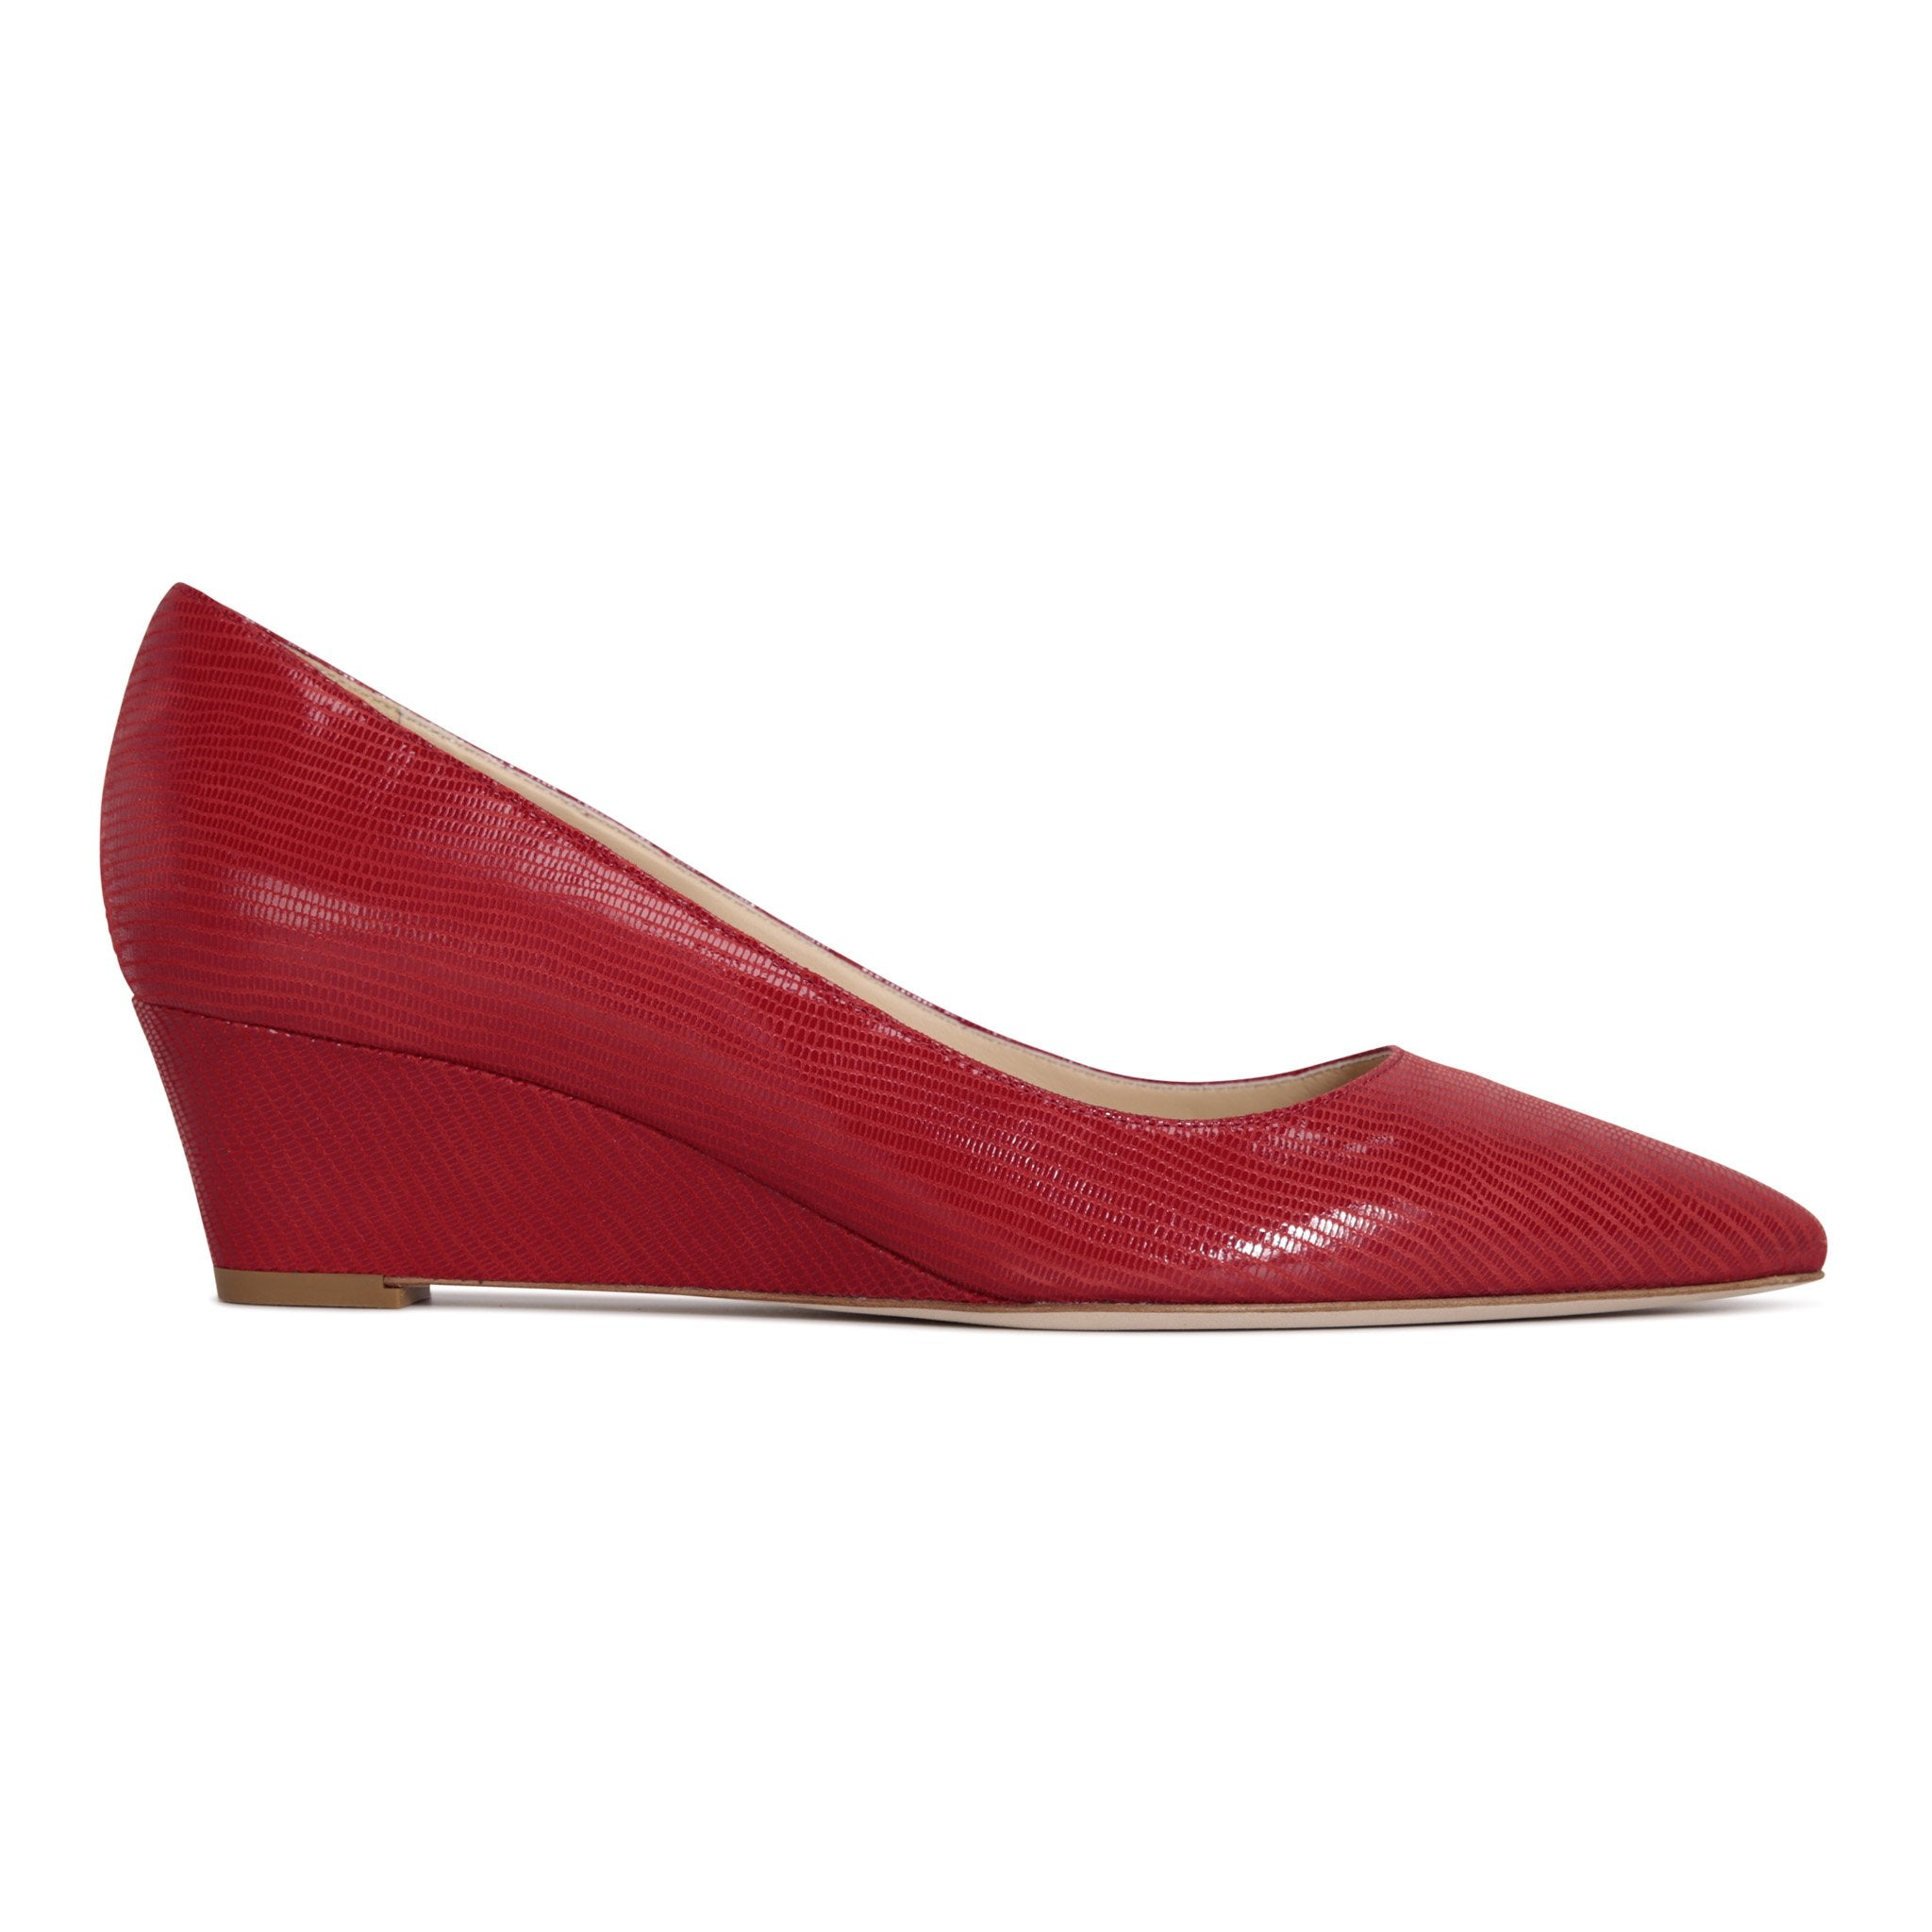 TRENTO - Varanus Rosso, VIAJIYU - Women's Hand Made Sustainable Luxury Shoes. Made in Italy. Made to Order.